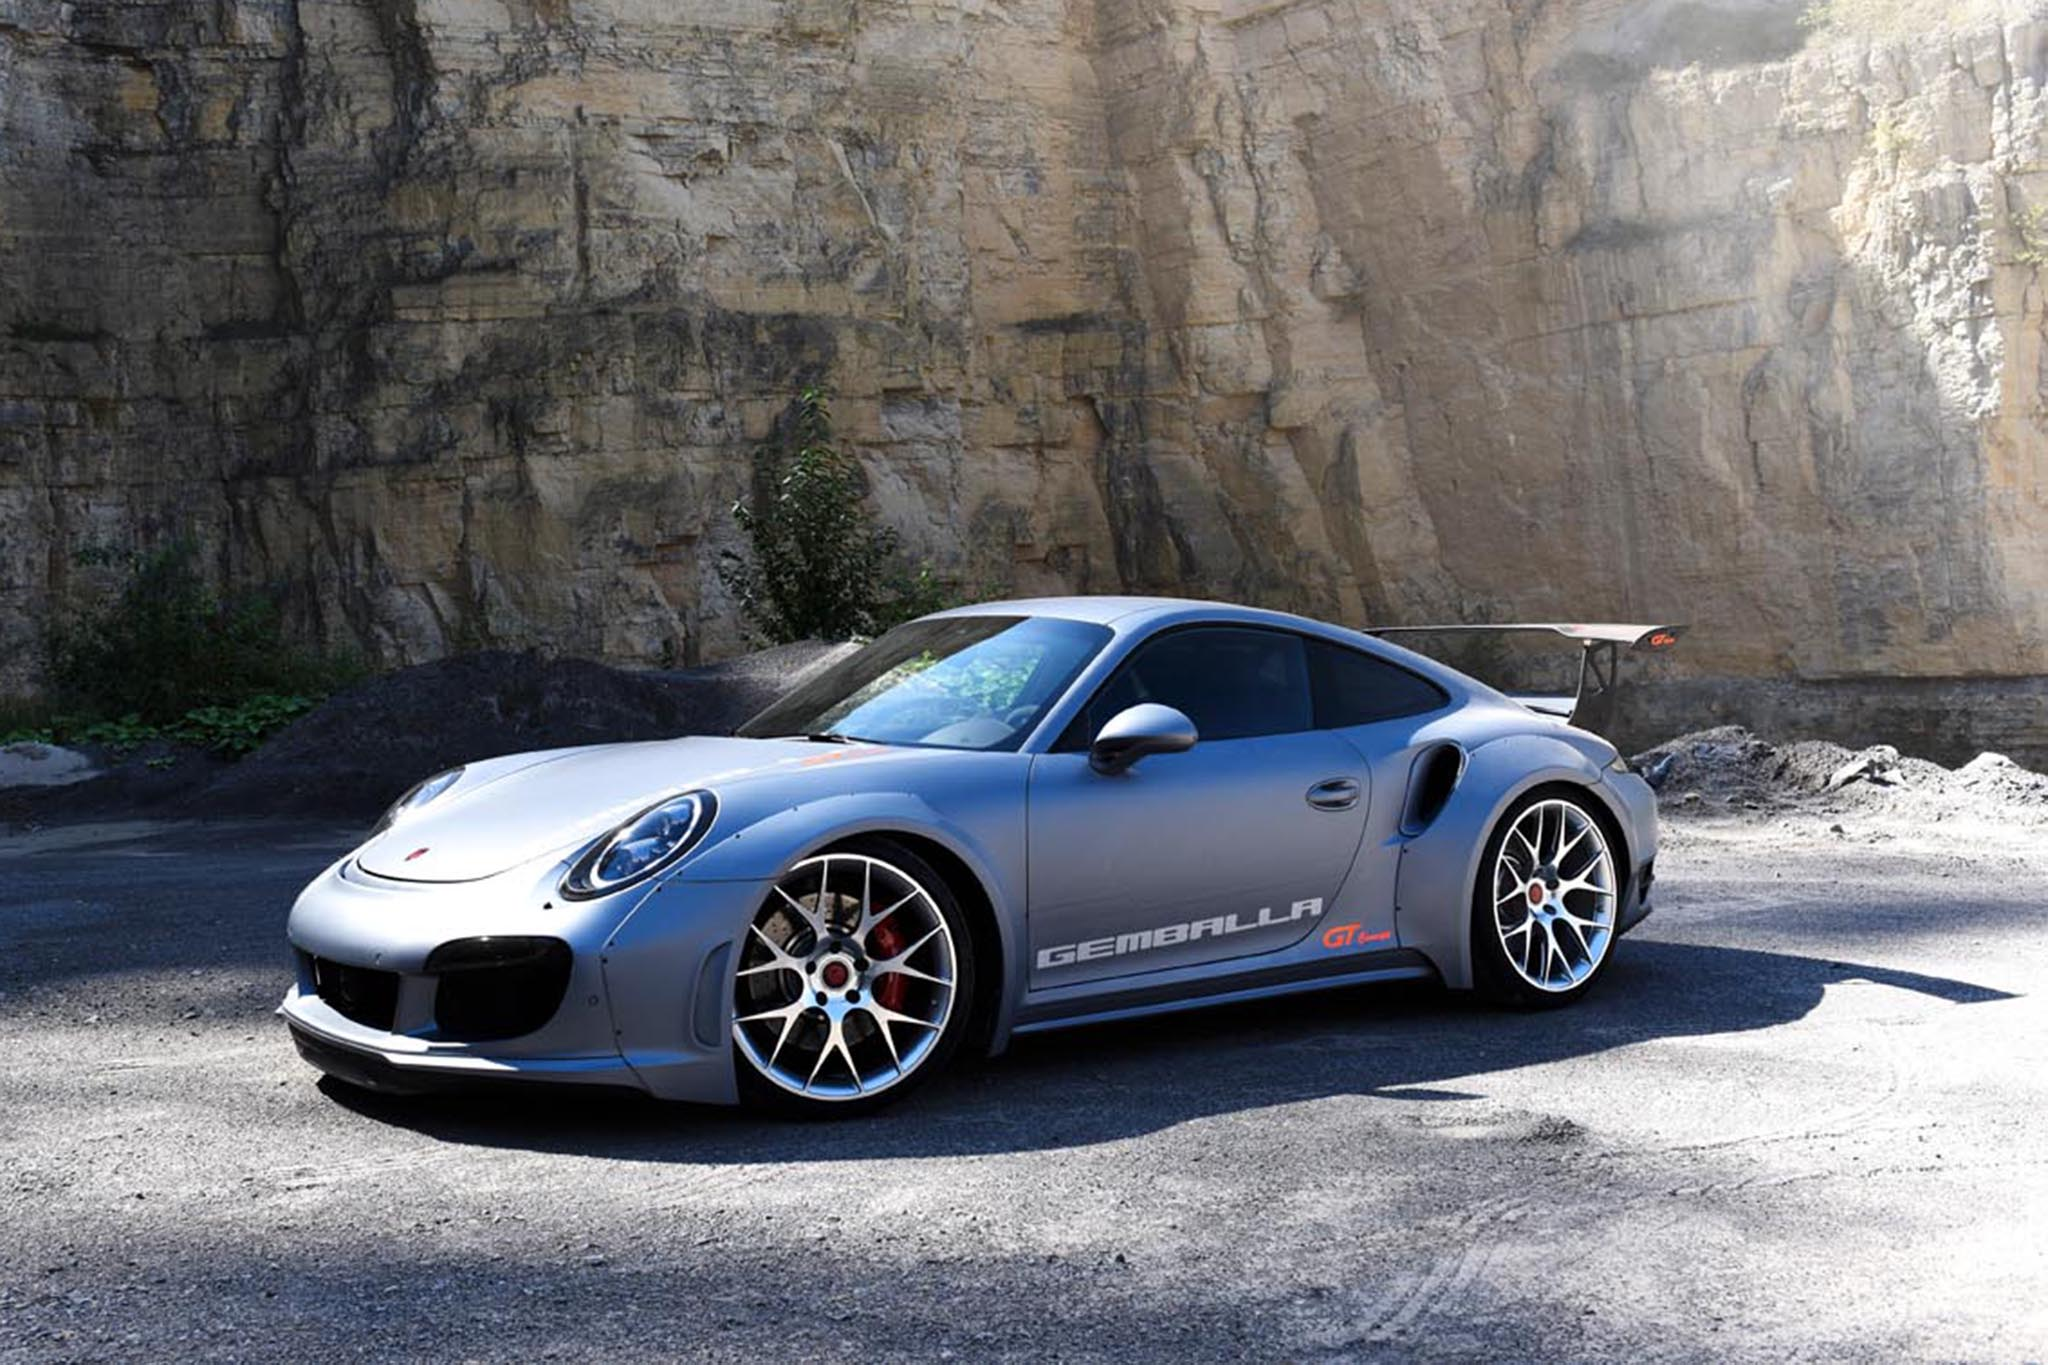 Gemballa GT Concept Side Three Quarters